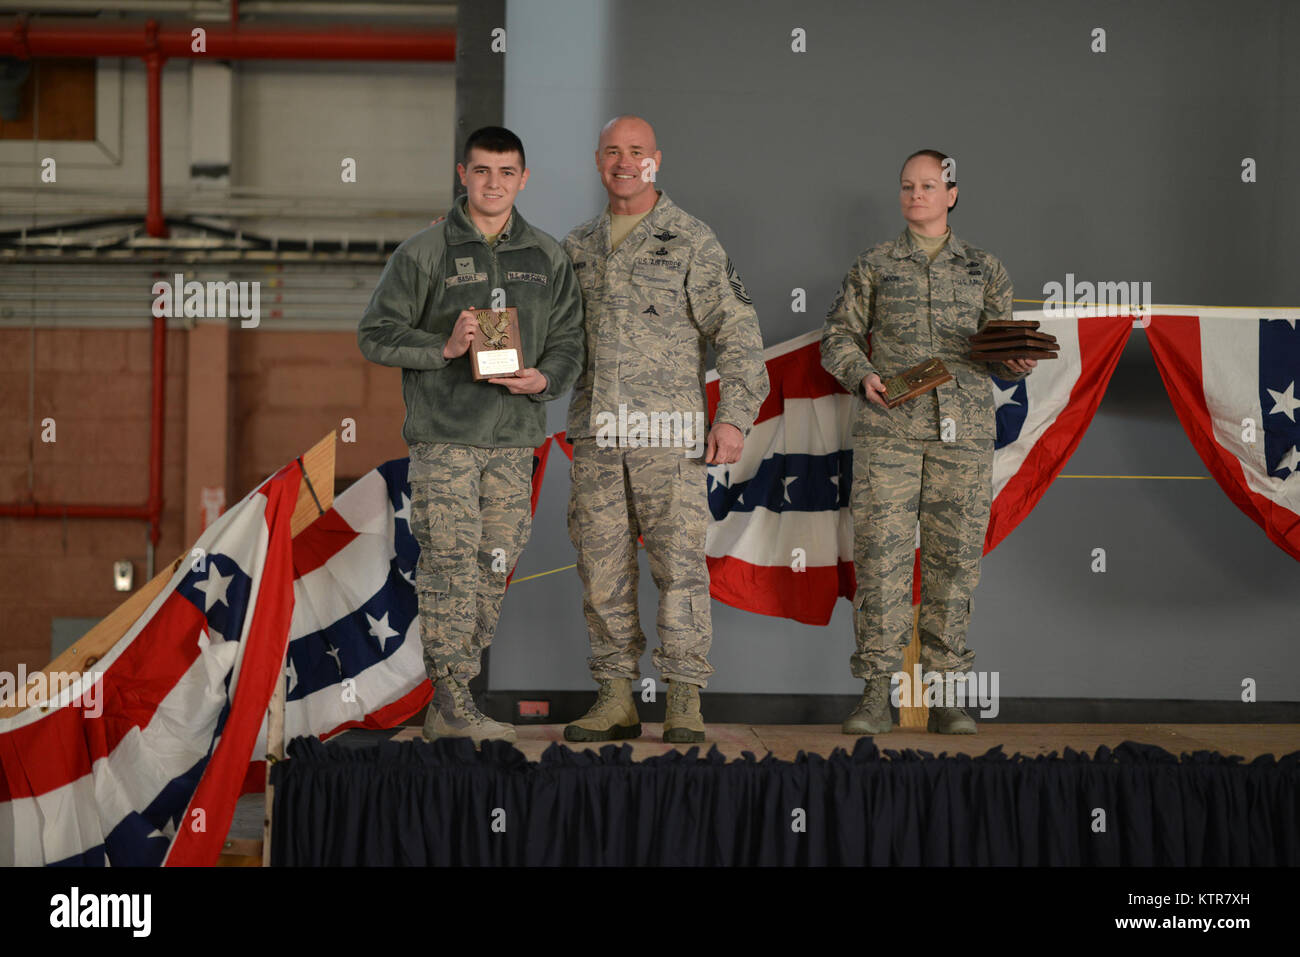 106th Rescue Wing December Drill Award Winners Stock Photo